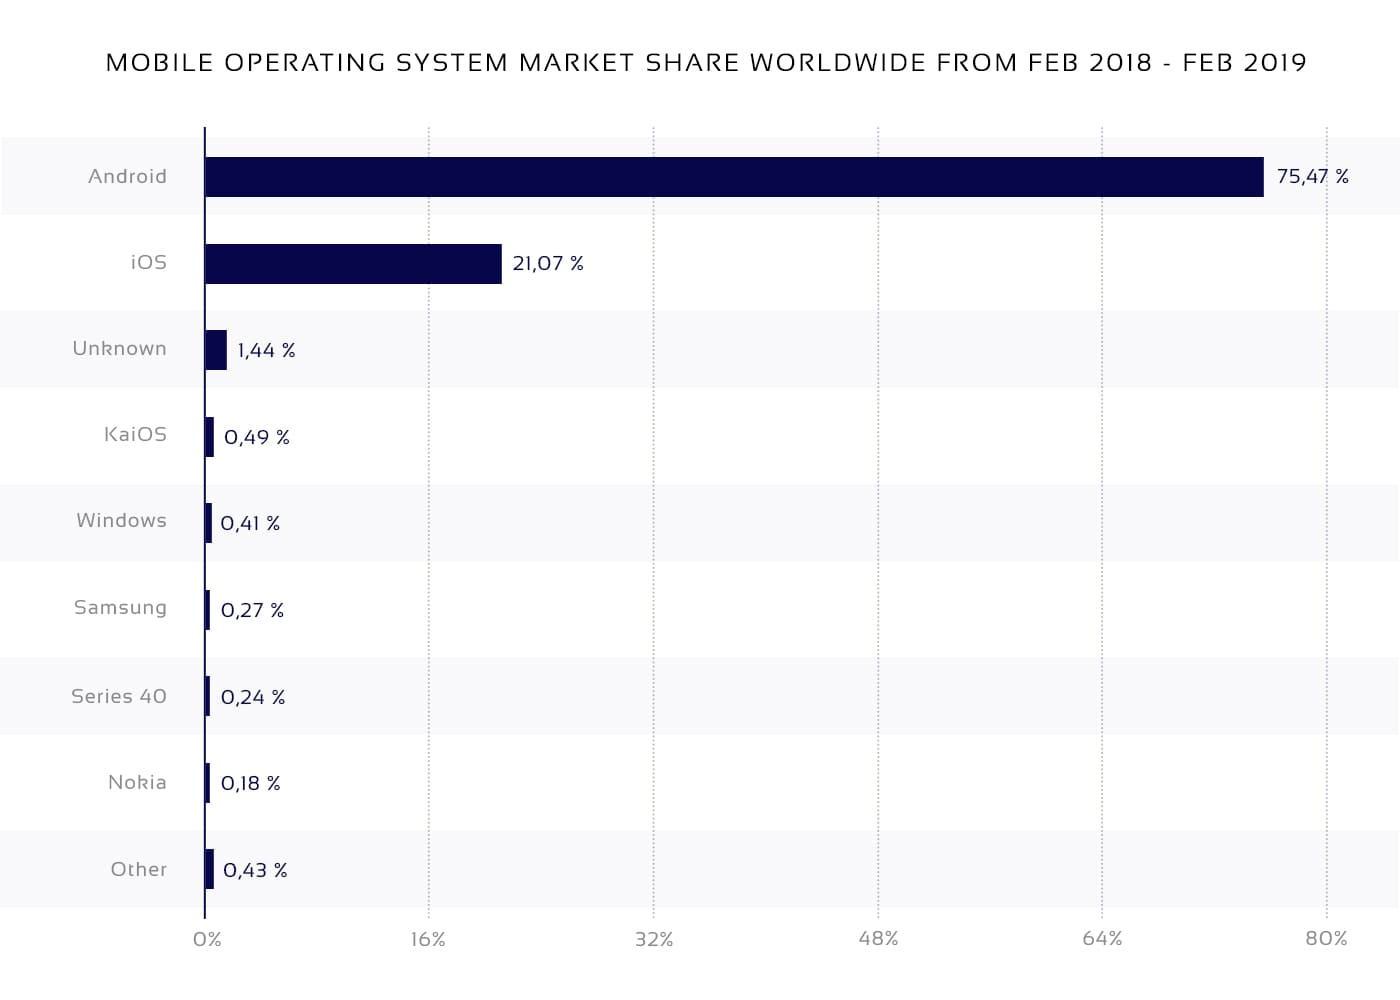 Mobile OS market share in P2P marketplace